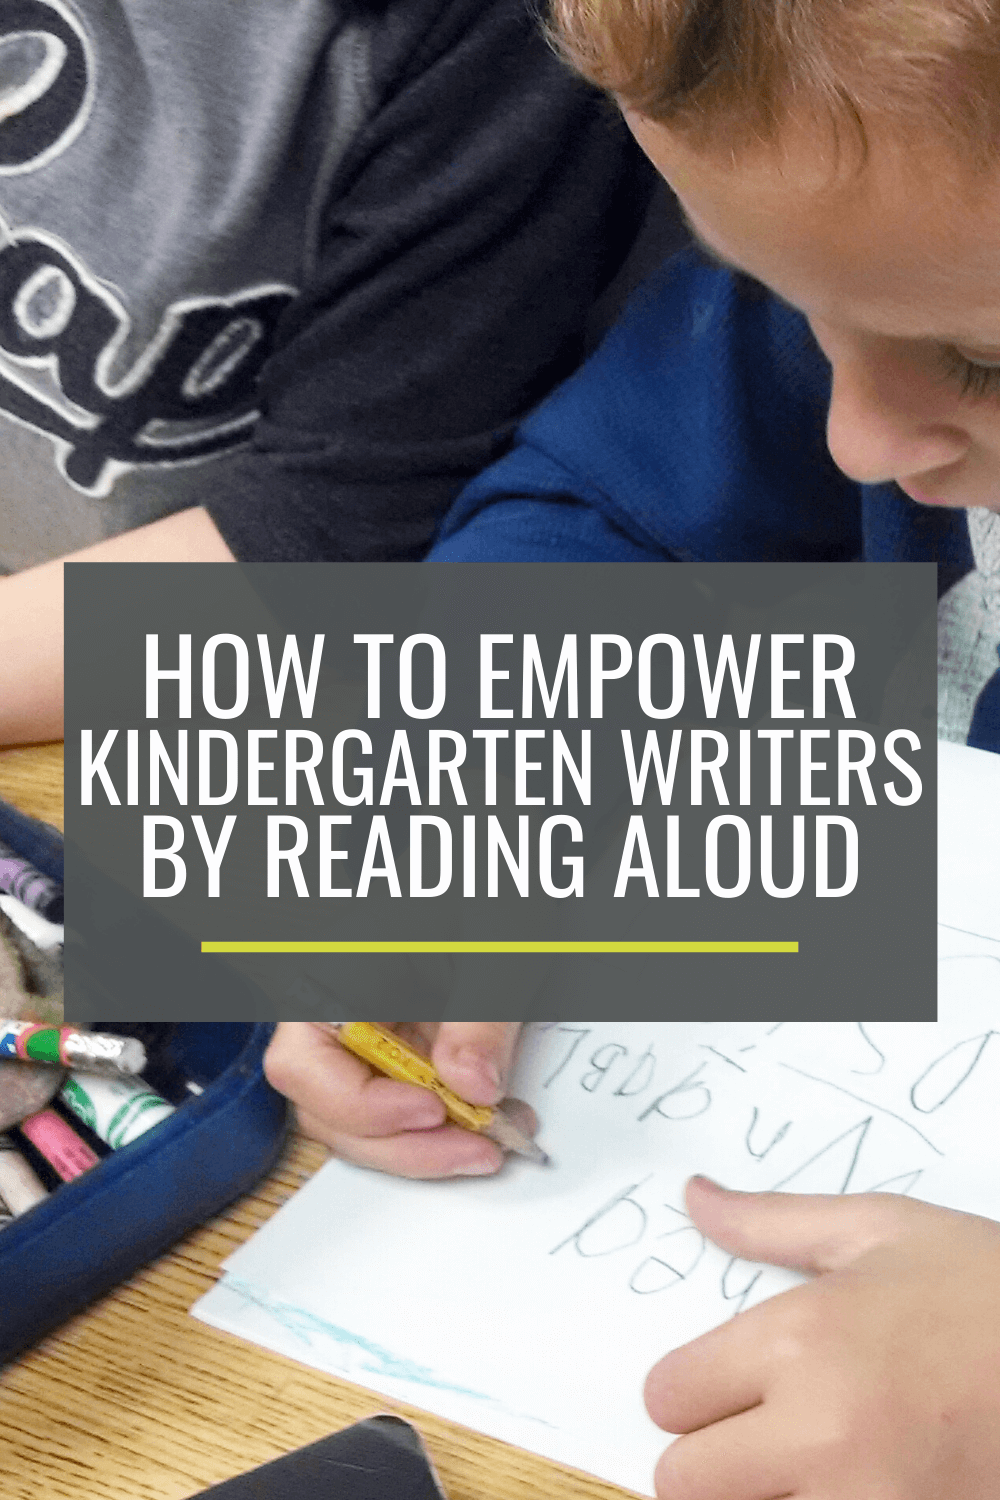 How to Empower Kindergarten Writers By Reading Aloud